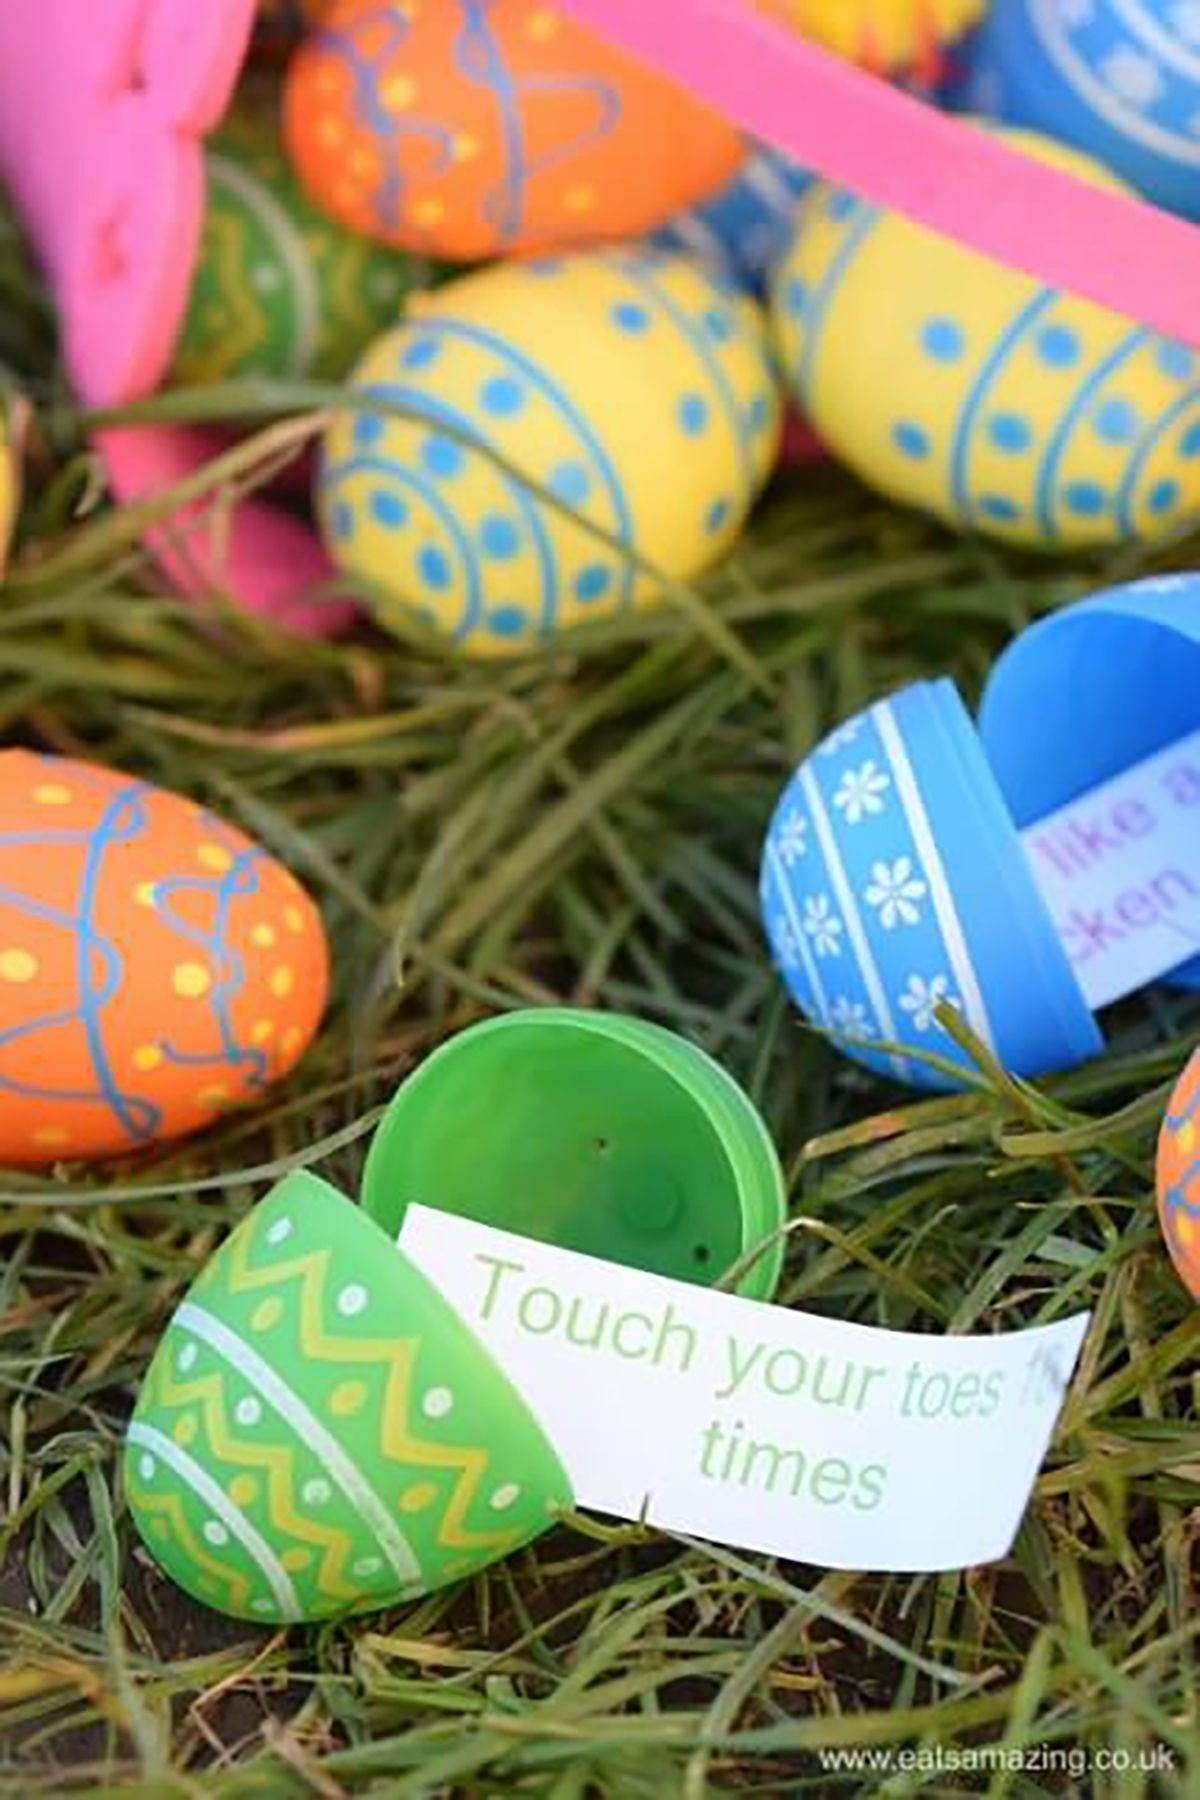 10 Elegant Easter Egg Ideas For Toddlers 14 fun easter egg hunt ideas for kids unique easter egg hunt ideas 5